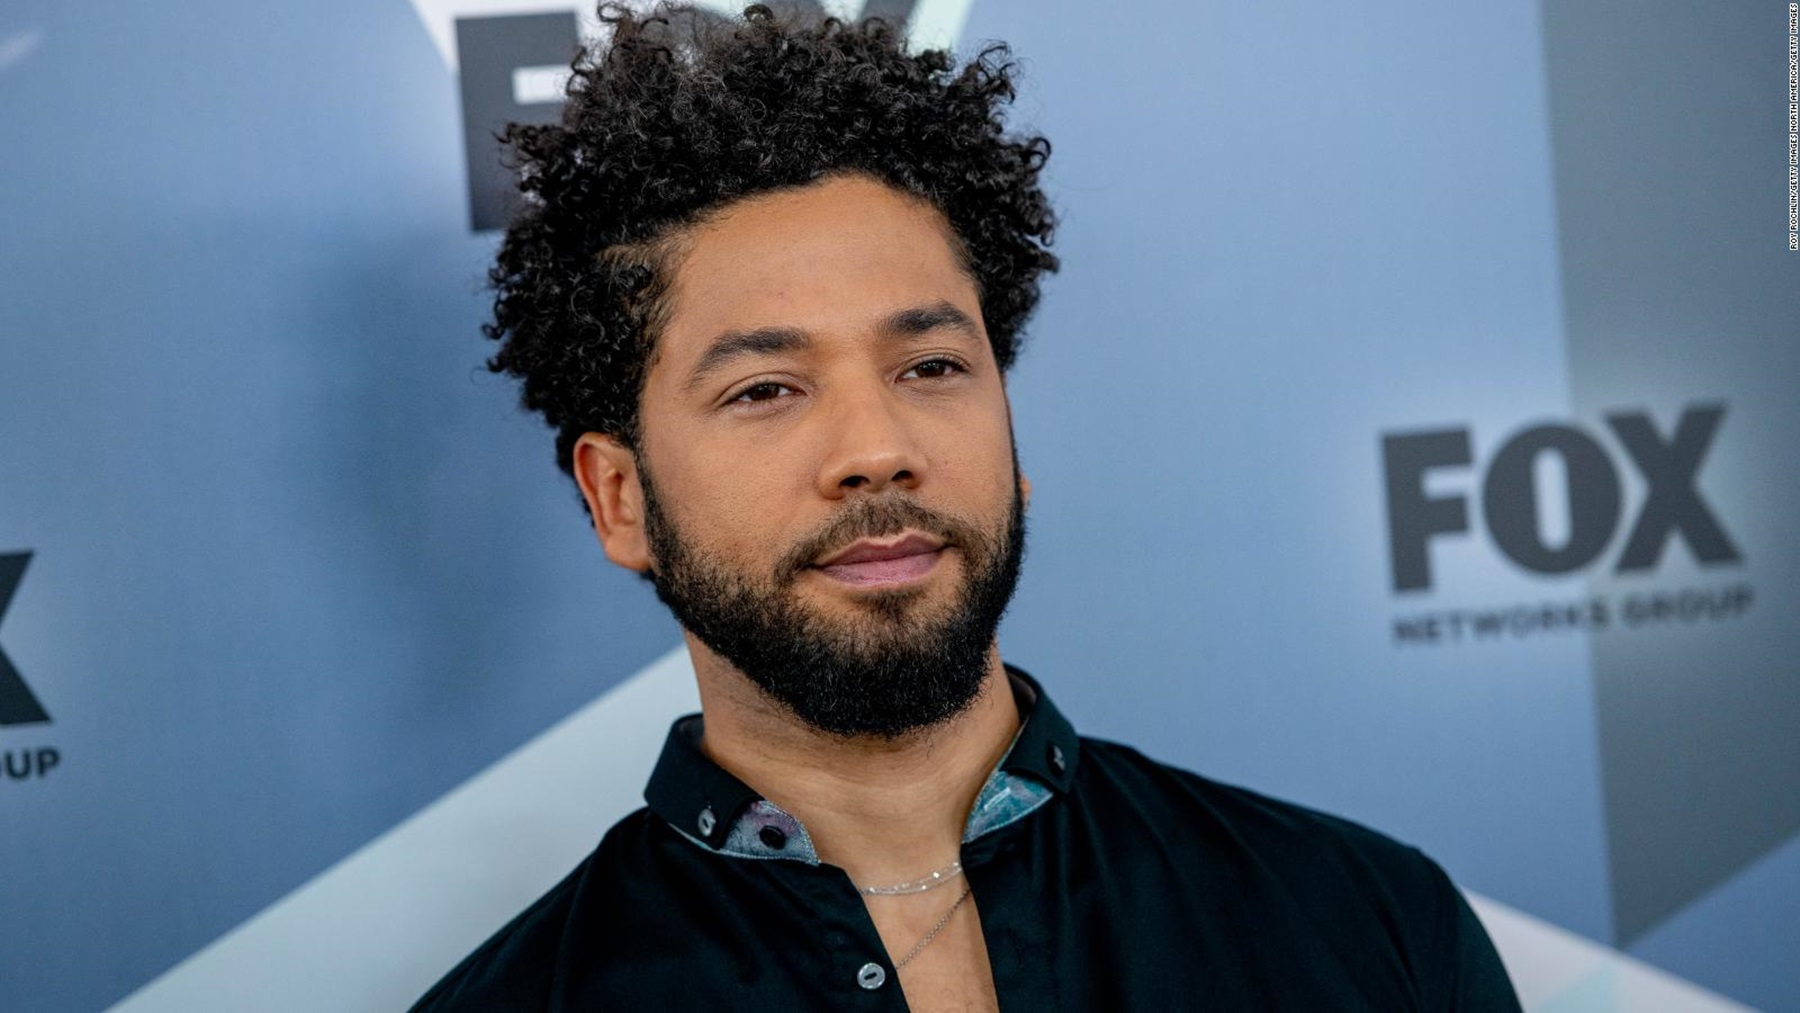 Jussie Smollett Comes Out To Fight A Reporter With This Message, And He Quickly Regrets It For This Reason